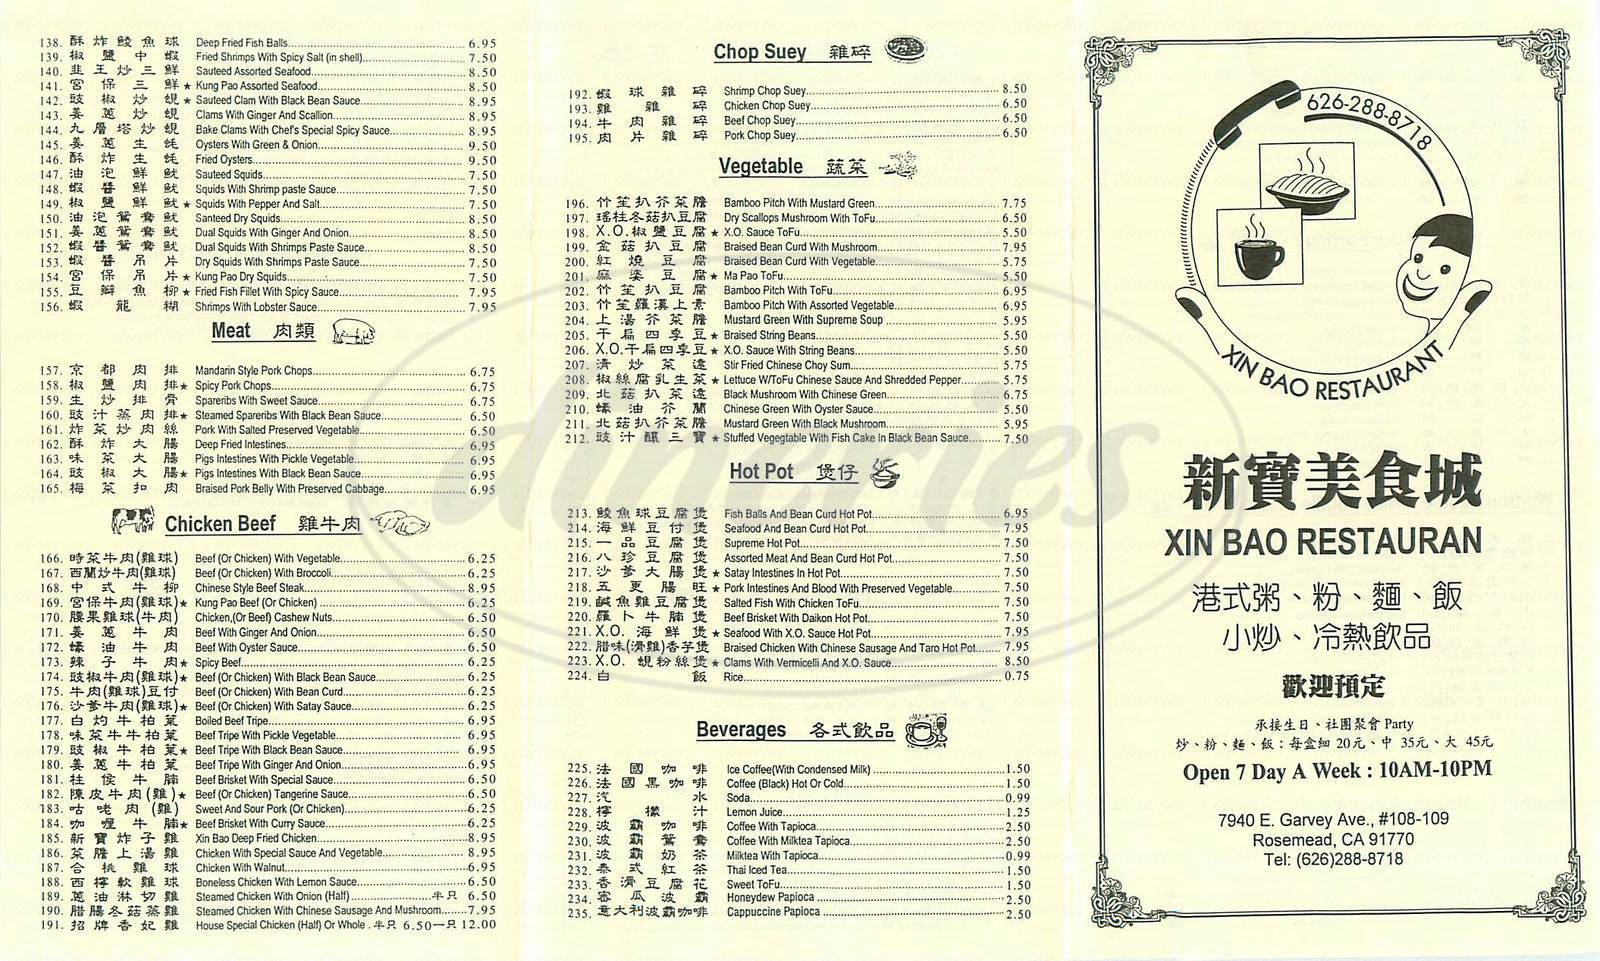 menu for Xin Bao Restaurant